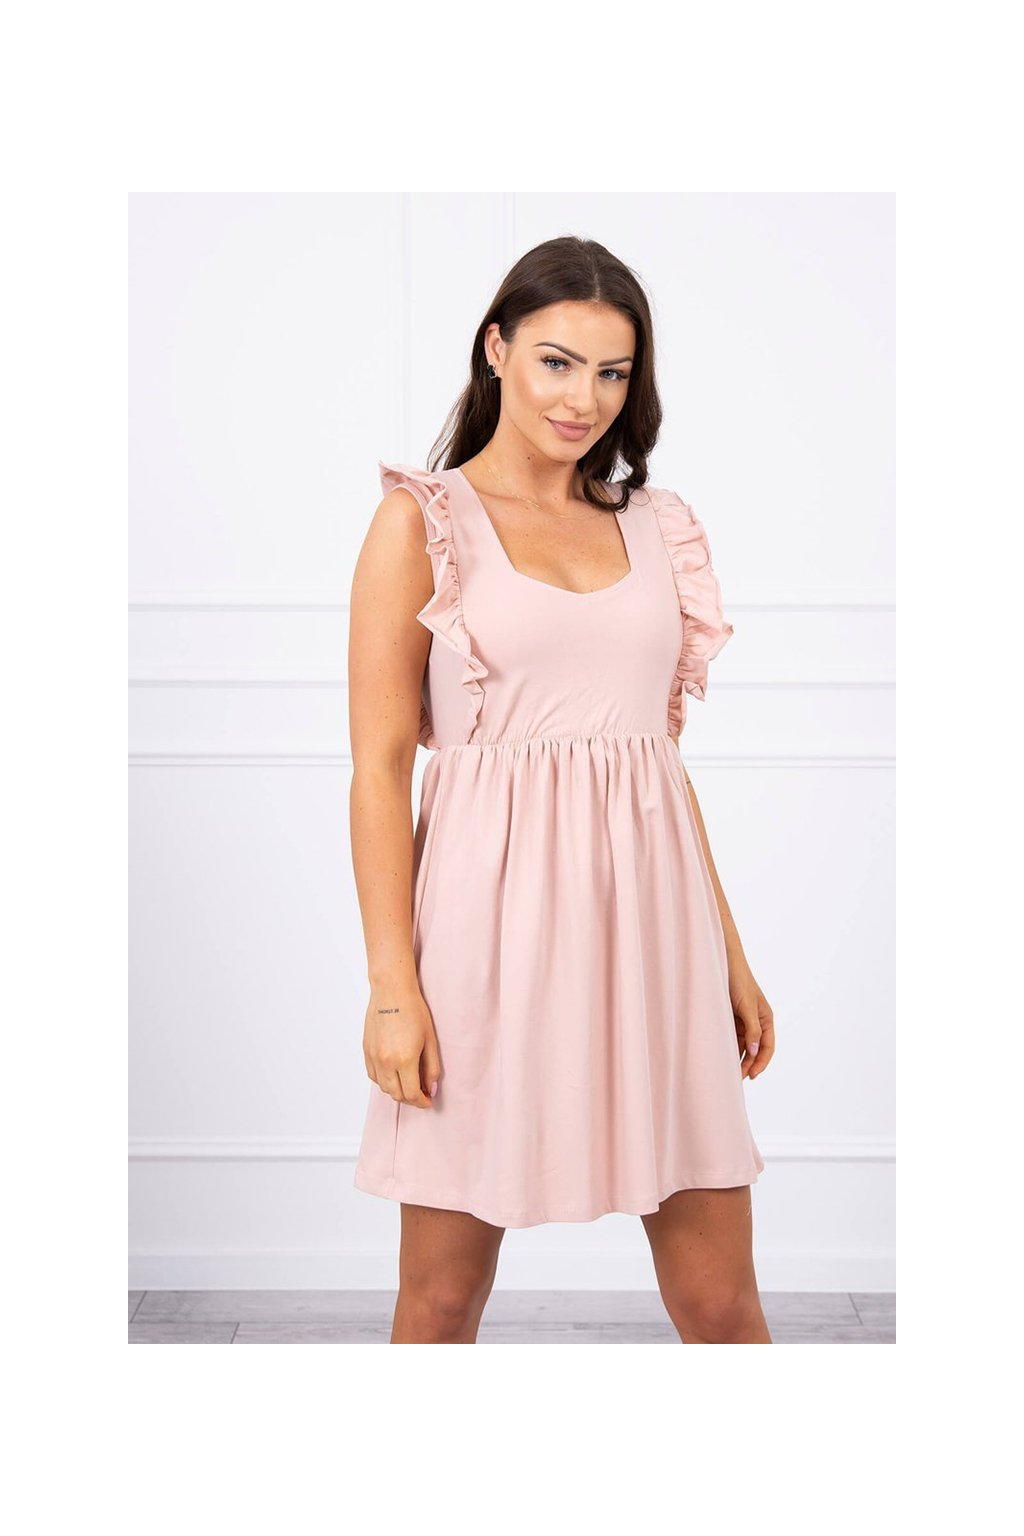 eng pl Dress with frills on the sides dark powdered pink 17659 2